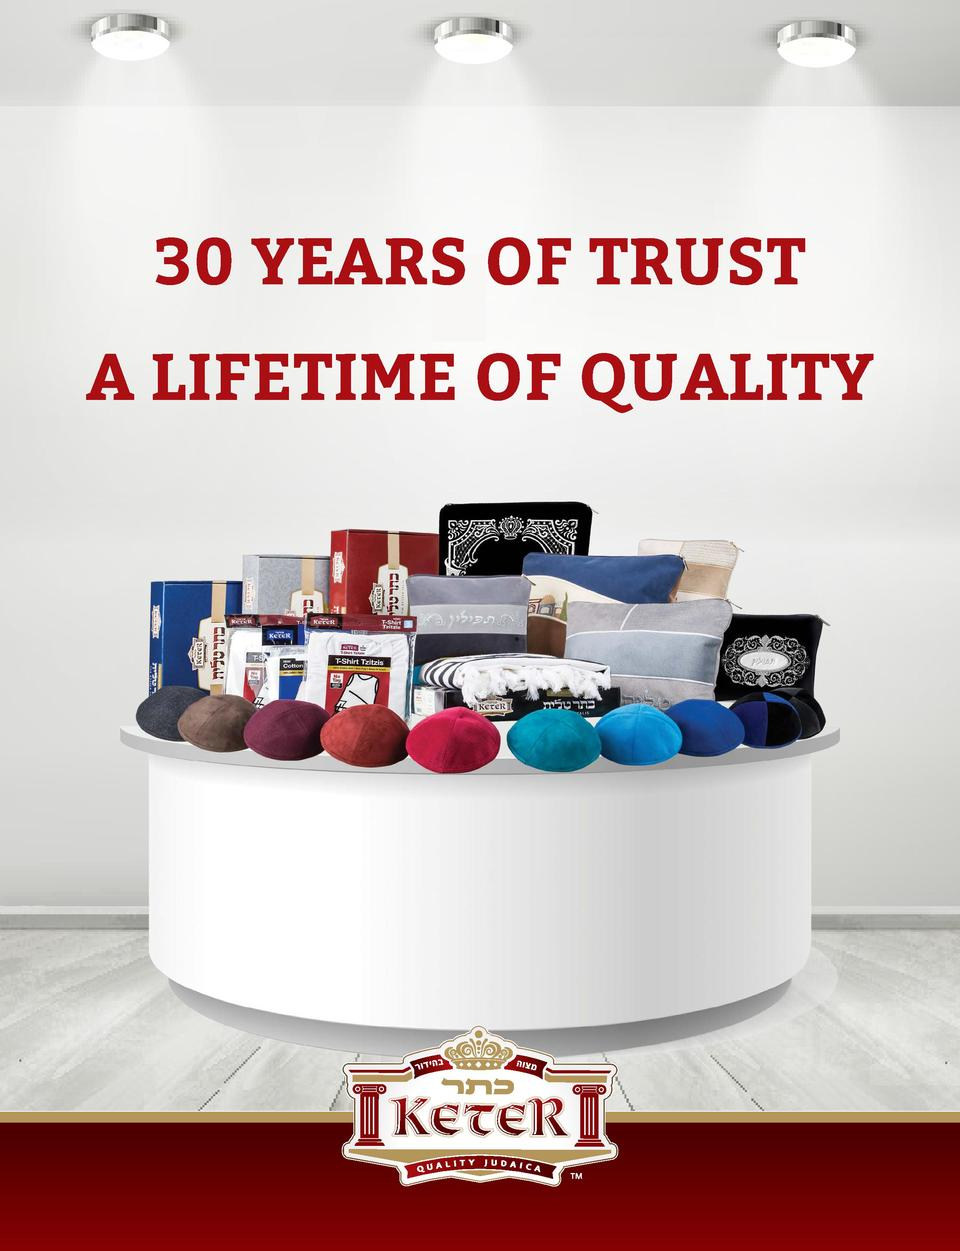 30 YEARS OF TRUST A LIFETIME OF QUALITY